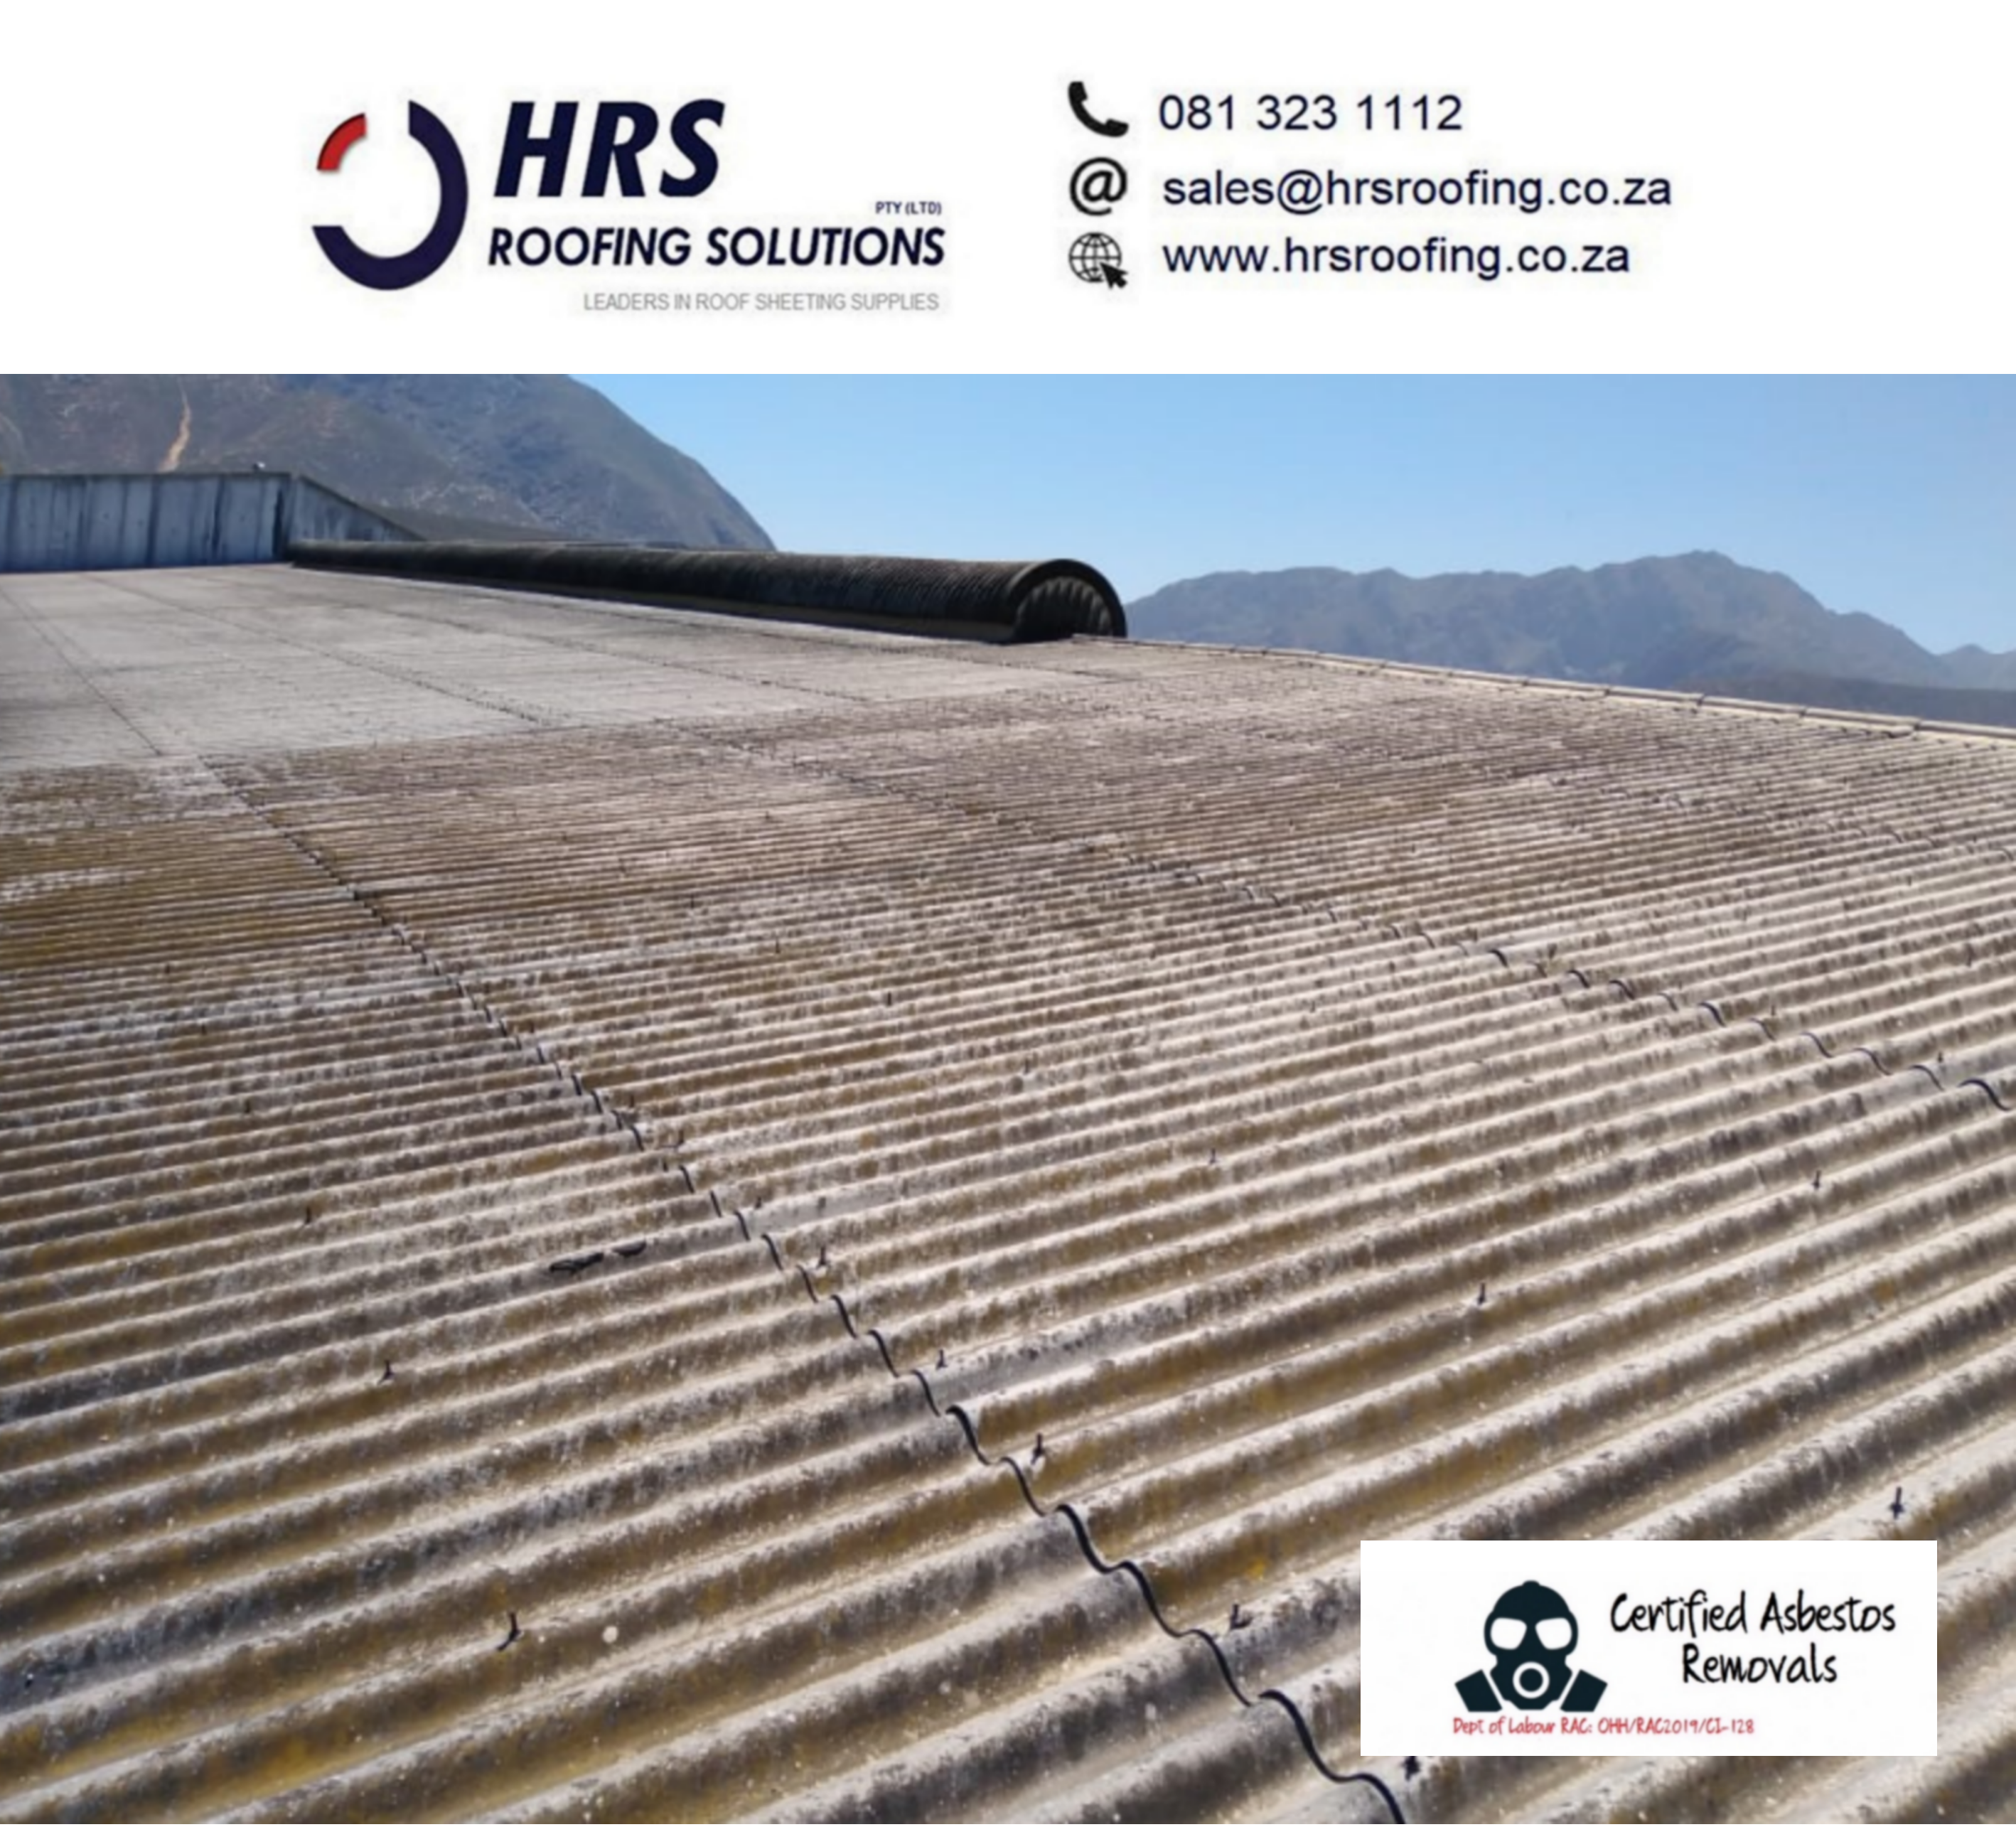 Asbestos roof removal and safe disposal cape town paarl stellenbosch - Roofing Gallery